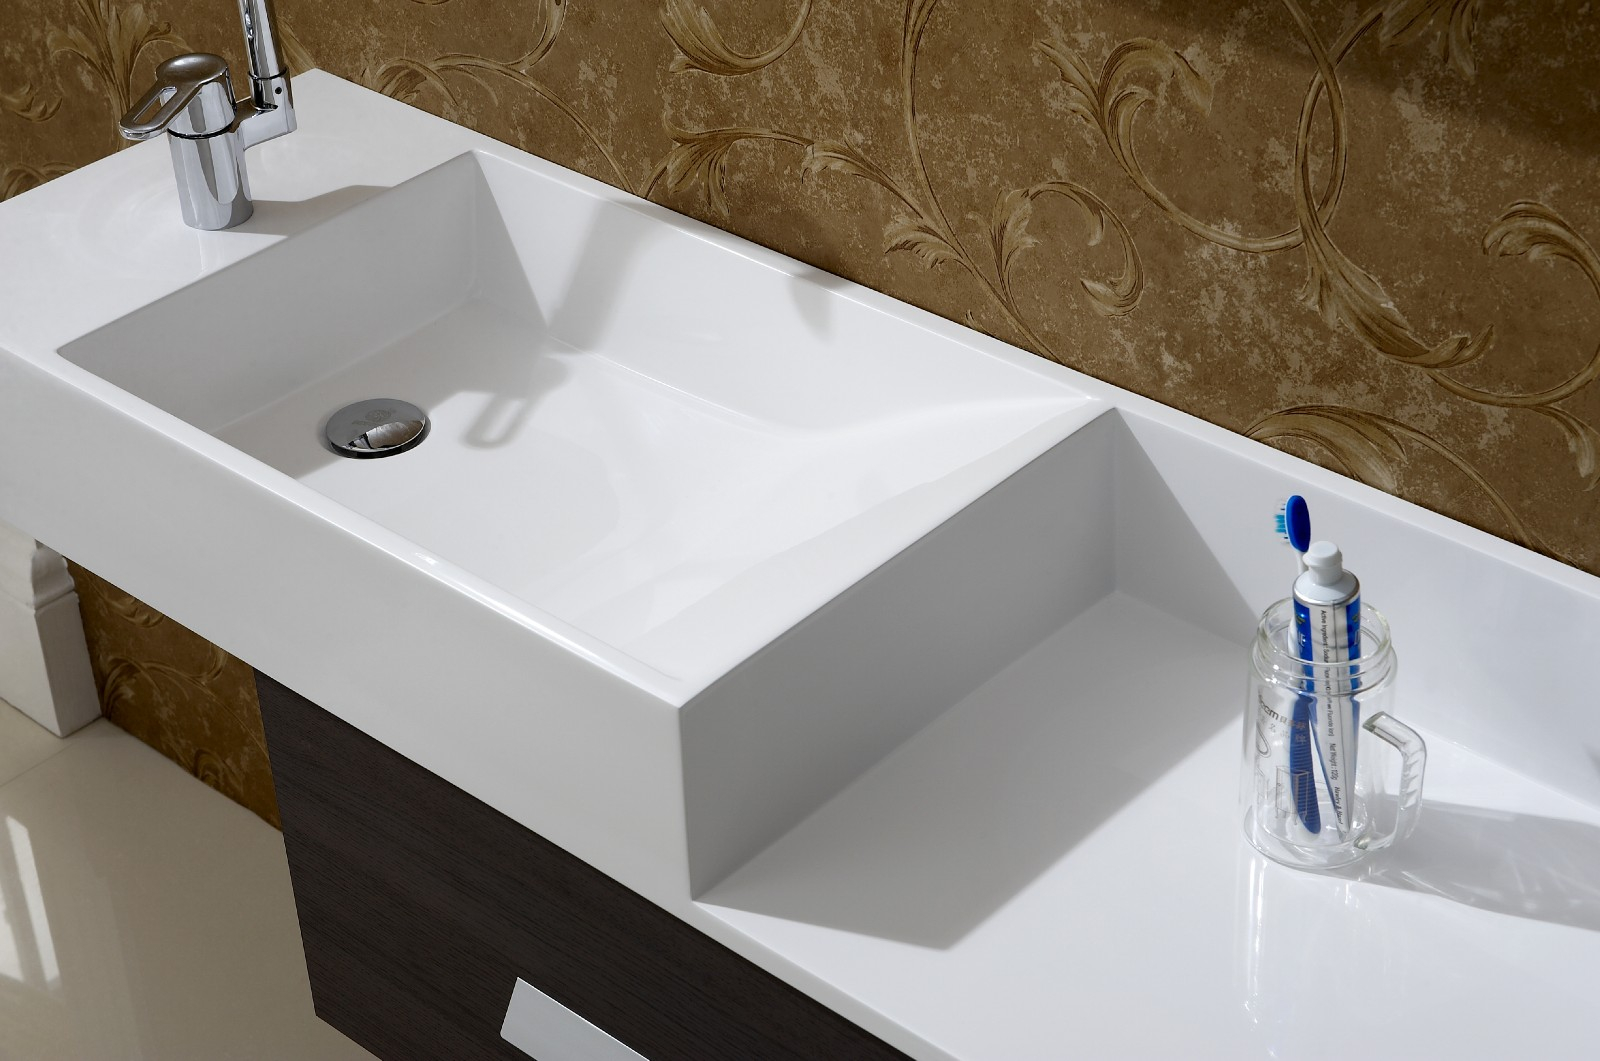 Modular Modern Bathroom Sinks White — Nhfirefighters : Option Modern within New Designer Bathroom Sinks